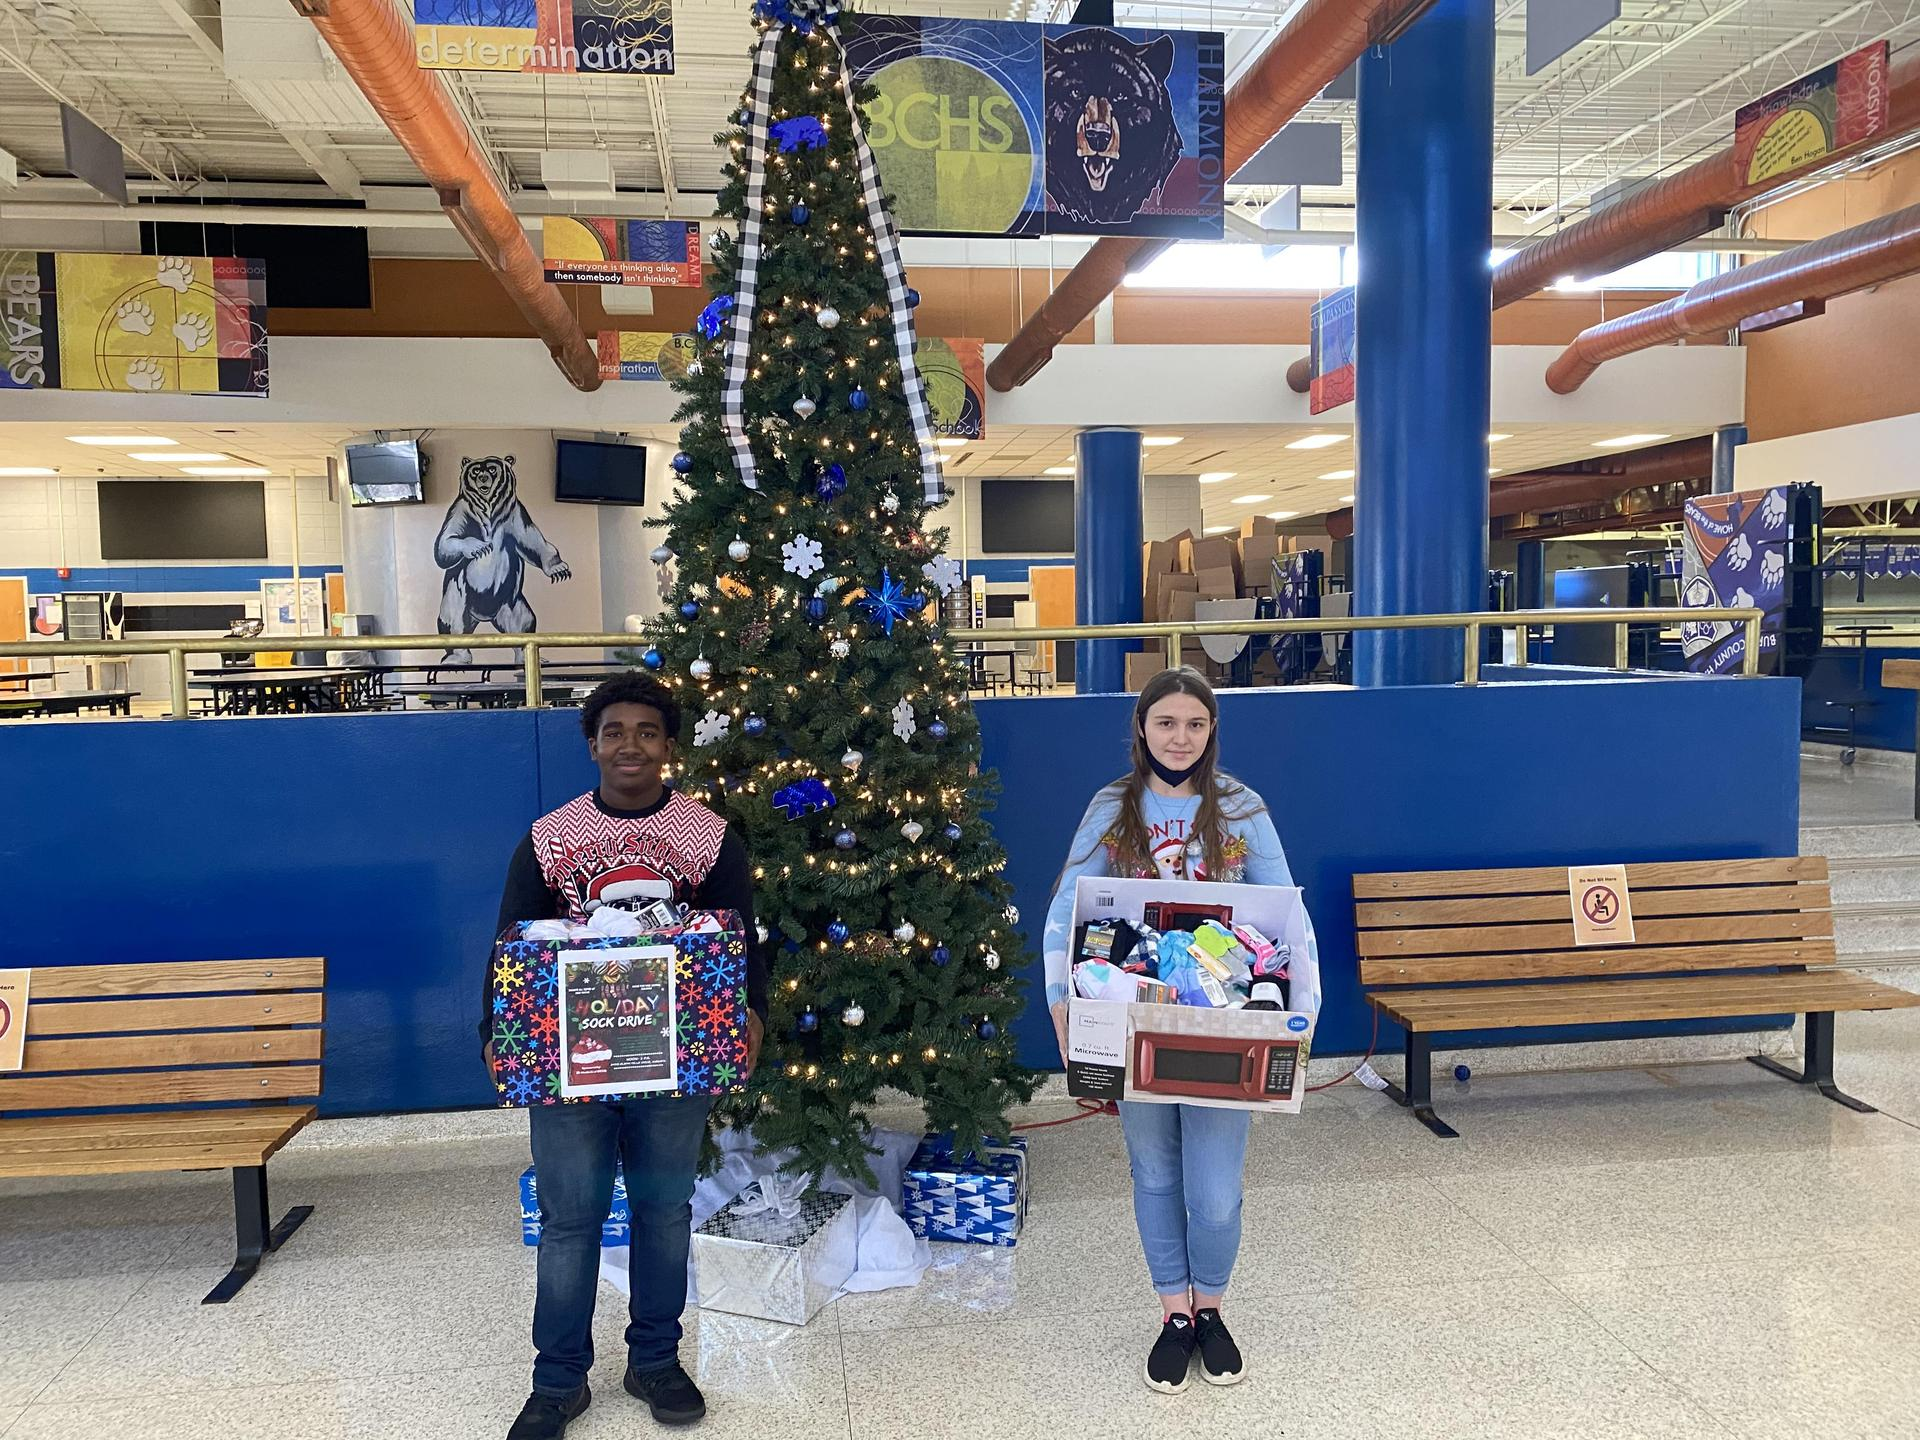 BCHS IB students learn about serving their community through a holiday sock drive.